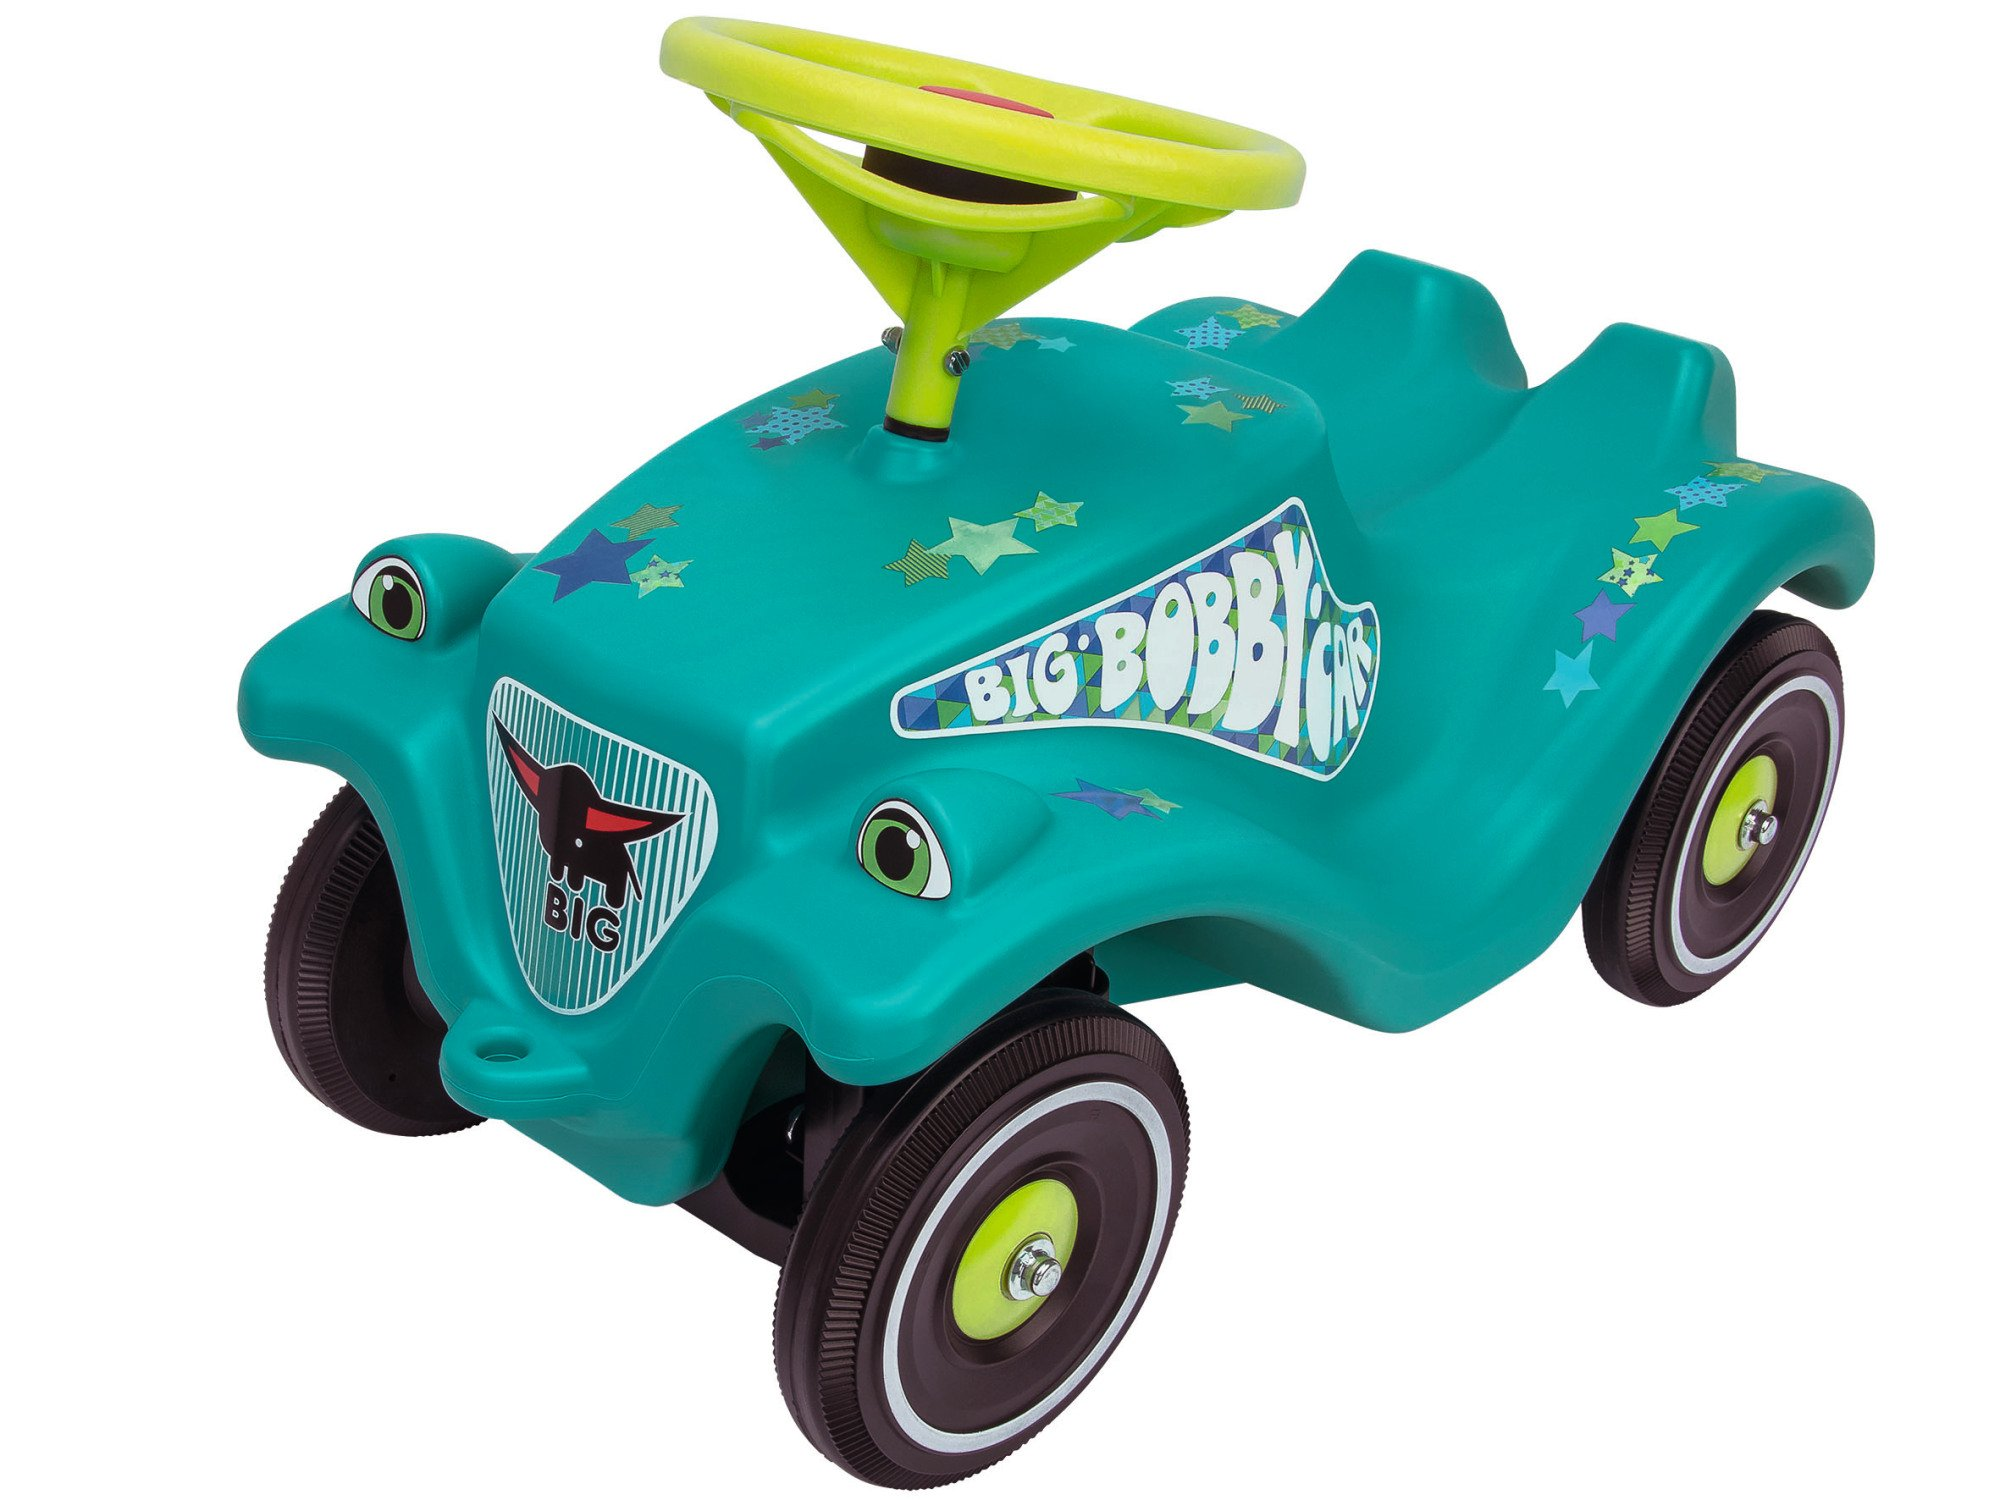 Big Bobby Car Classic Toy Factory 800056108Little Star Kid's Ride On Turquoise